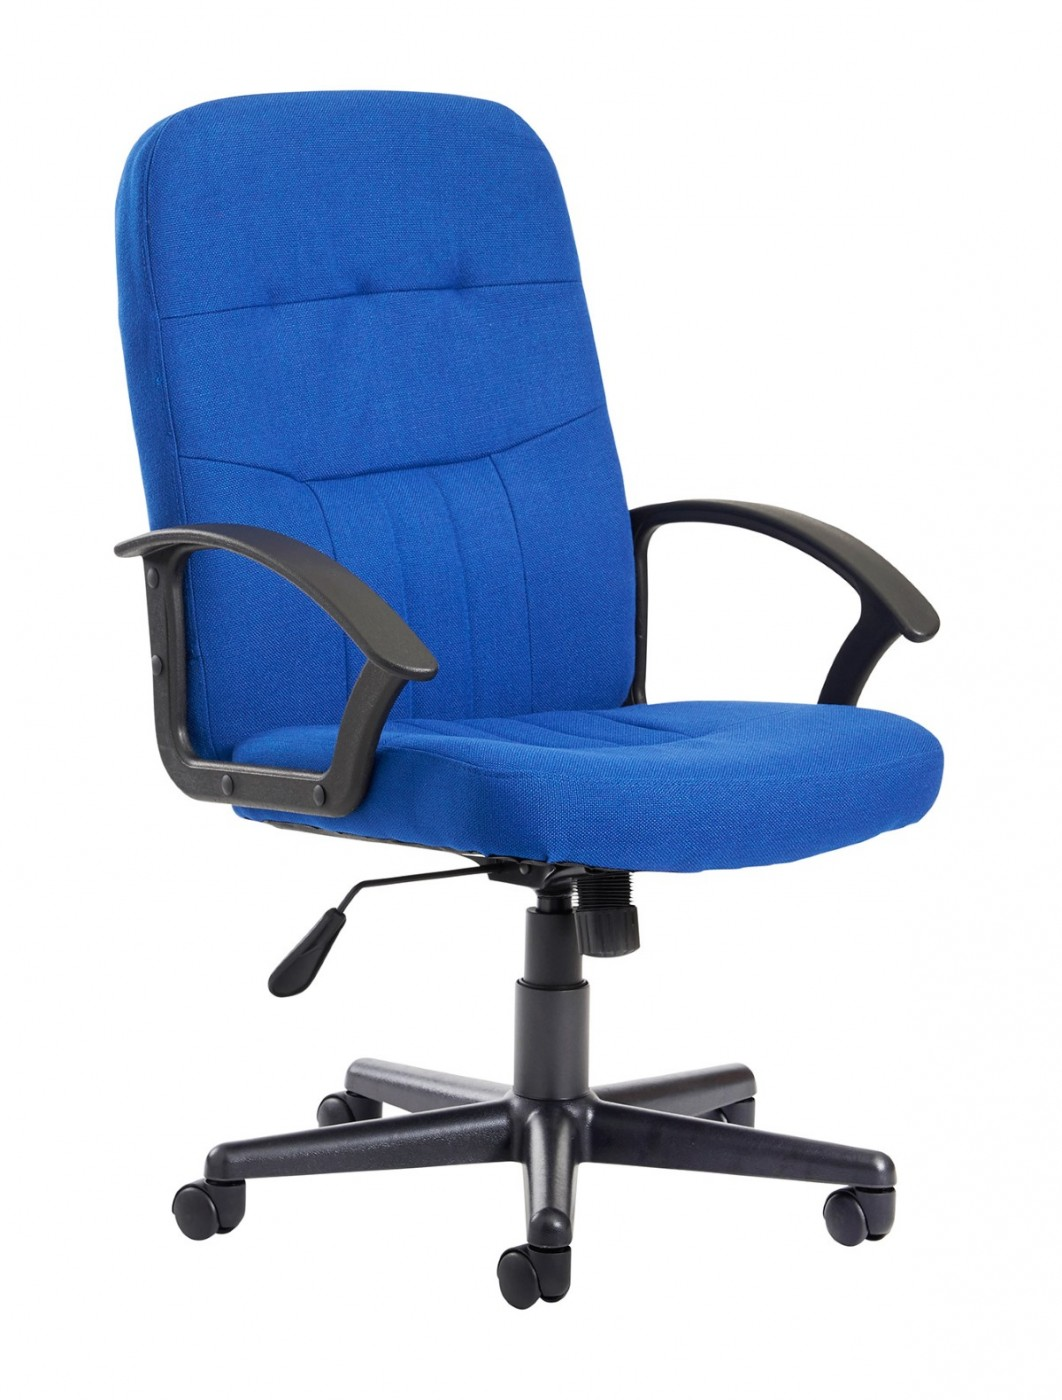 Office Chairs Cavalier Blue Office Chair Cav300t1 B